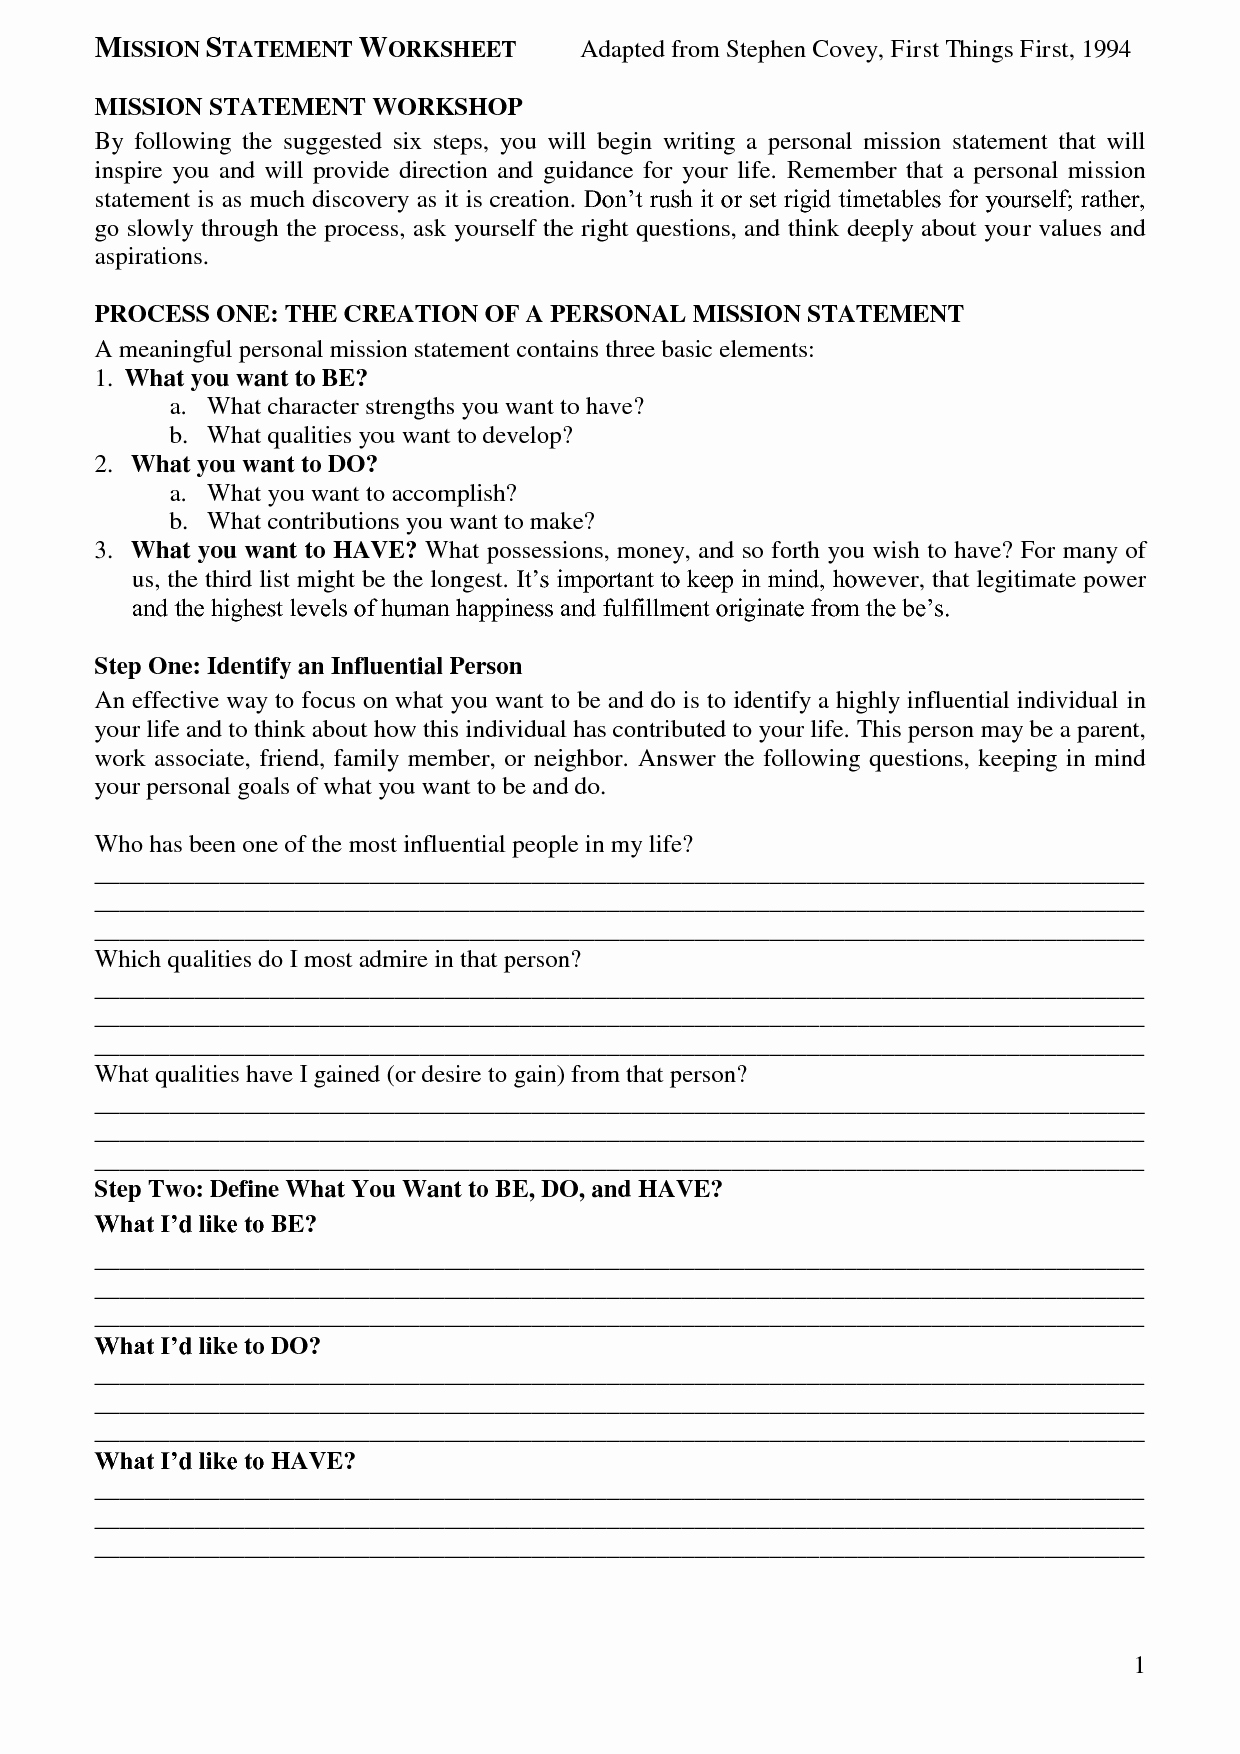 Personal Mission Statement Worksheet Luxury Sean Covey Mission Statement Worksheet Bing